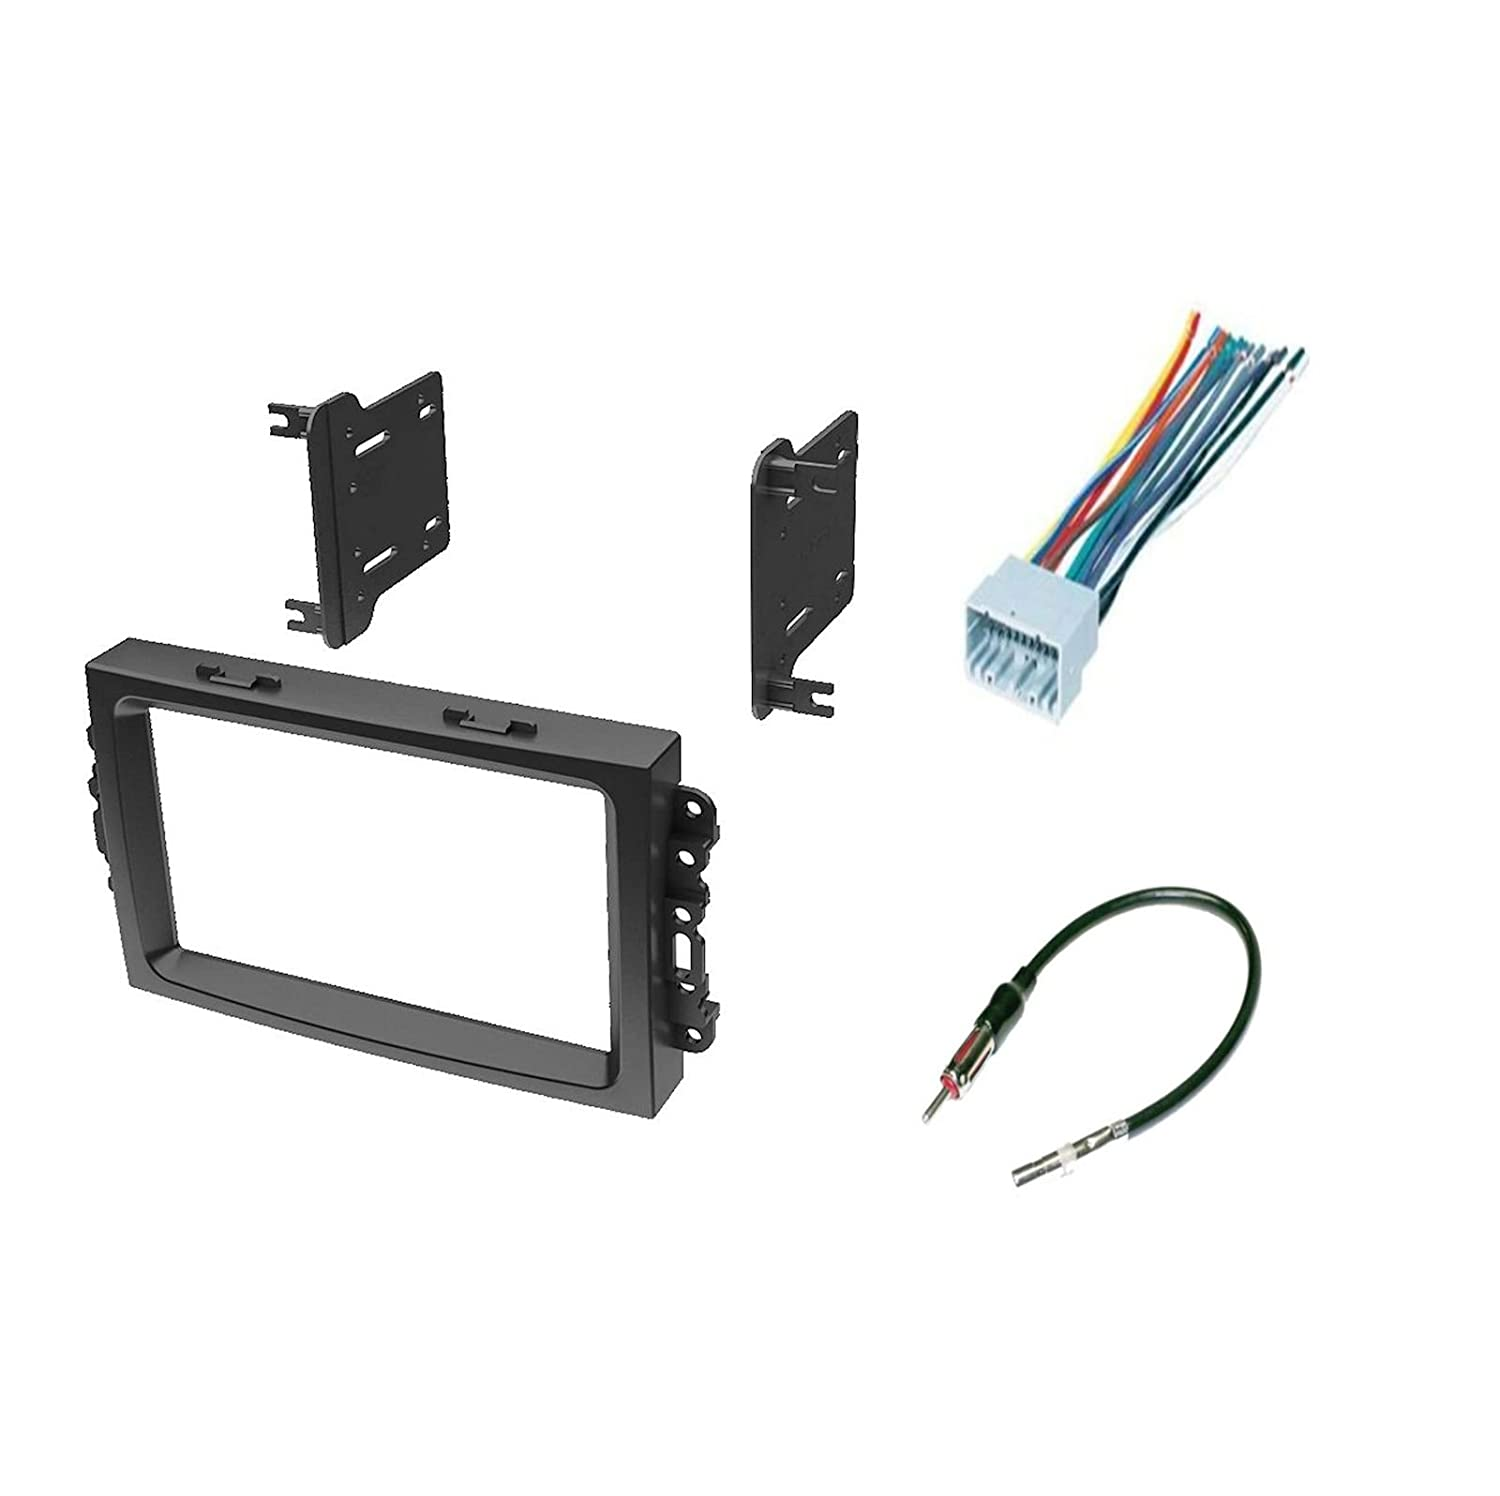 IMC Audio Double Din Dash Kit for Aftermarket Radio Installation for on rca wire, ice wire, apc wire,